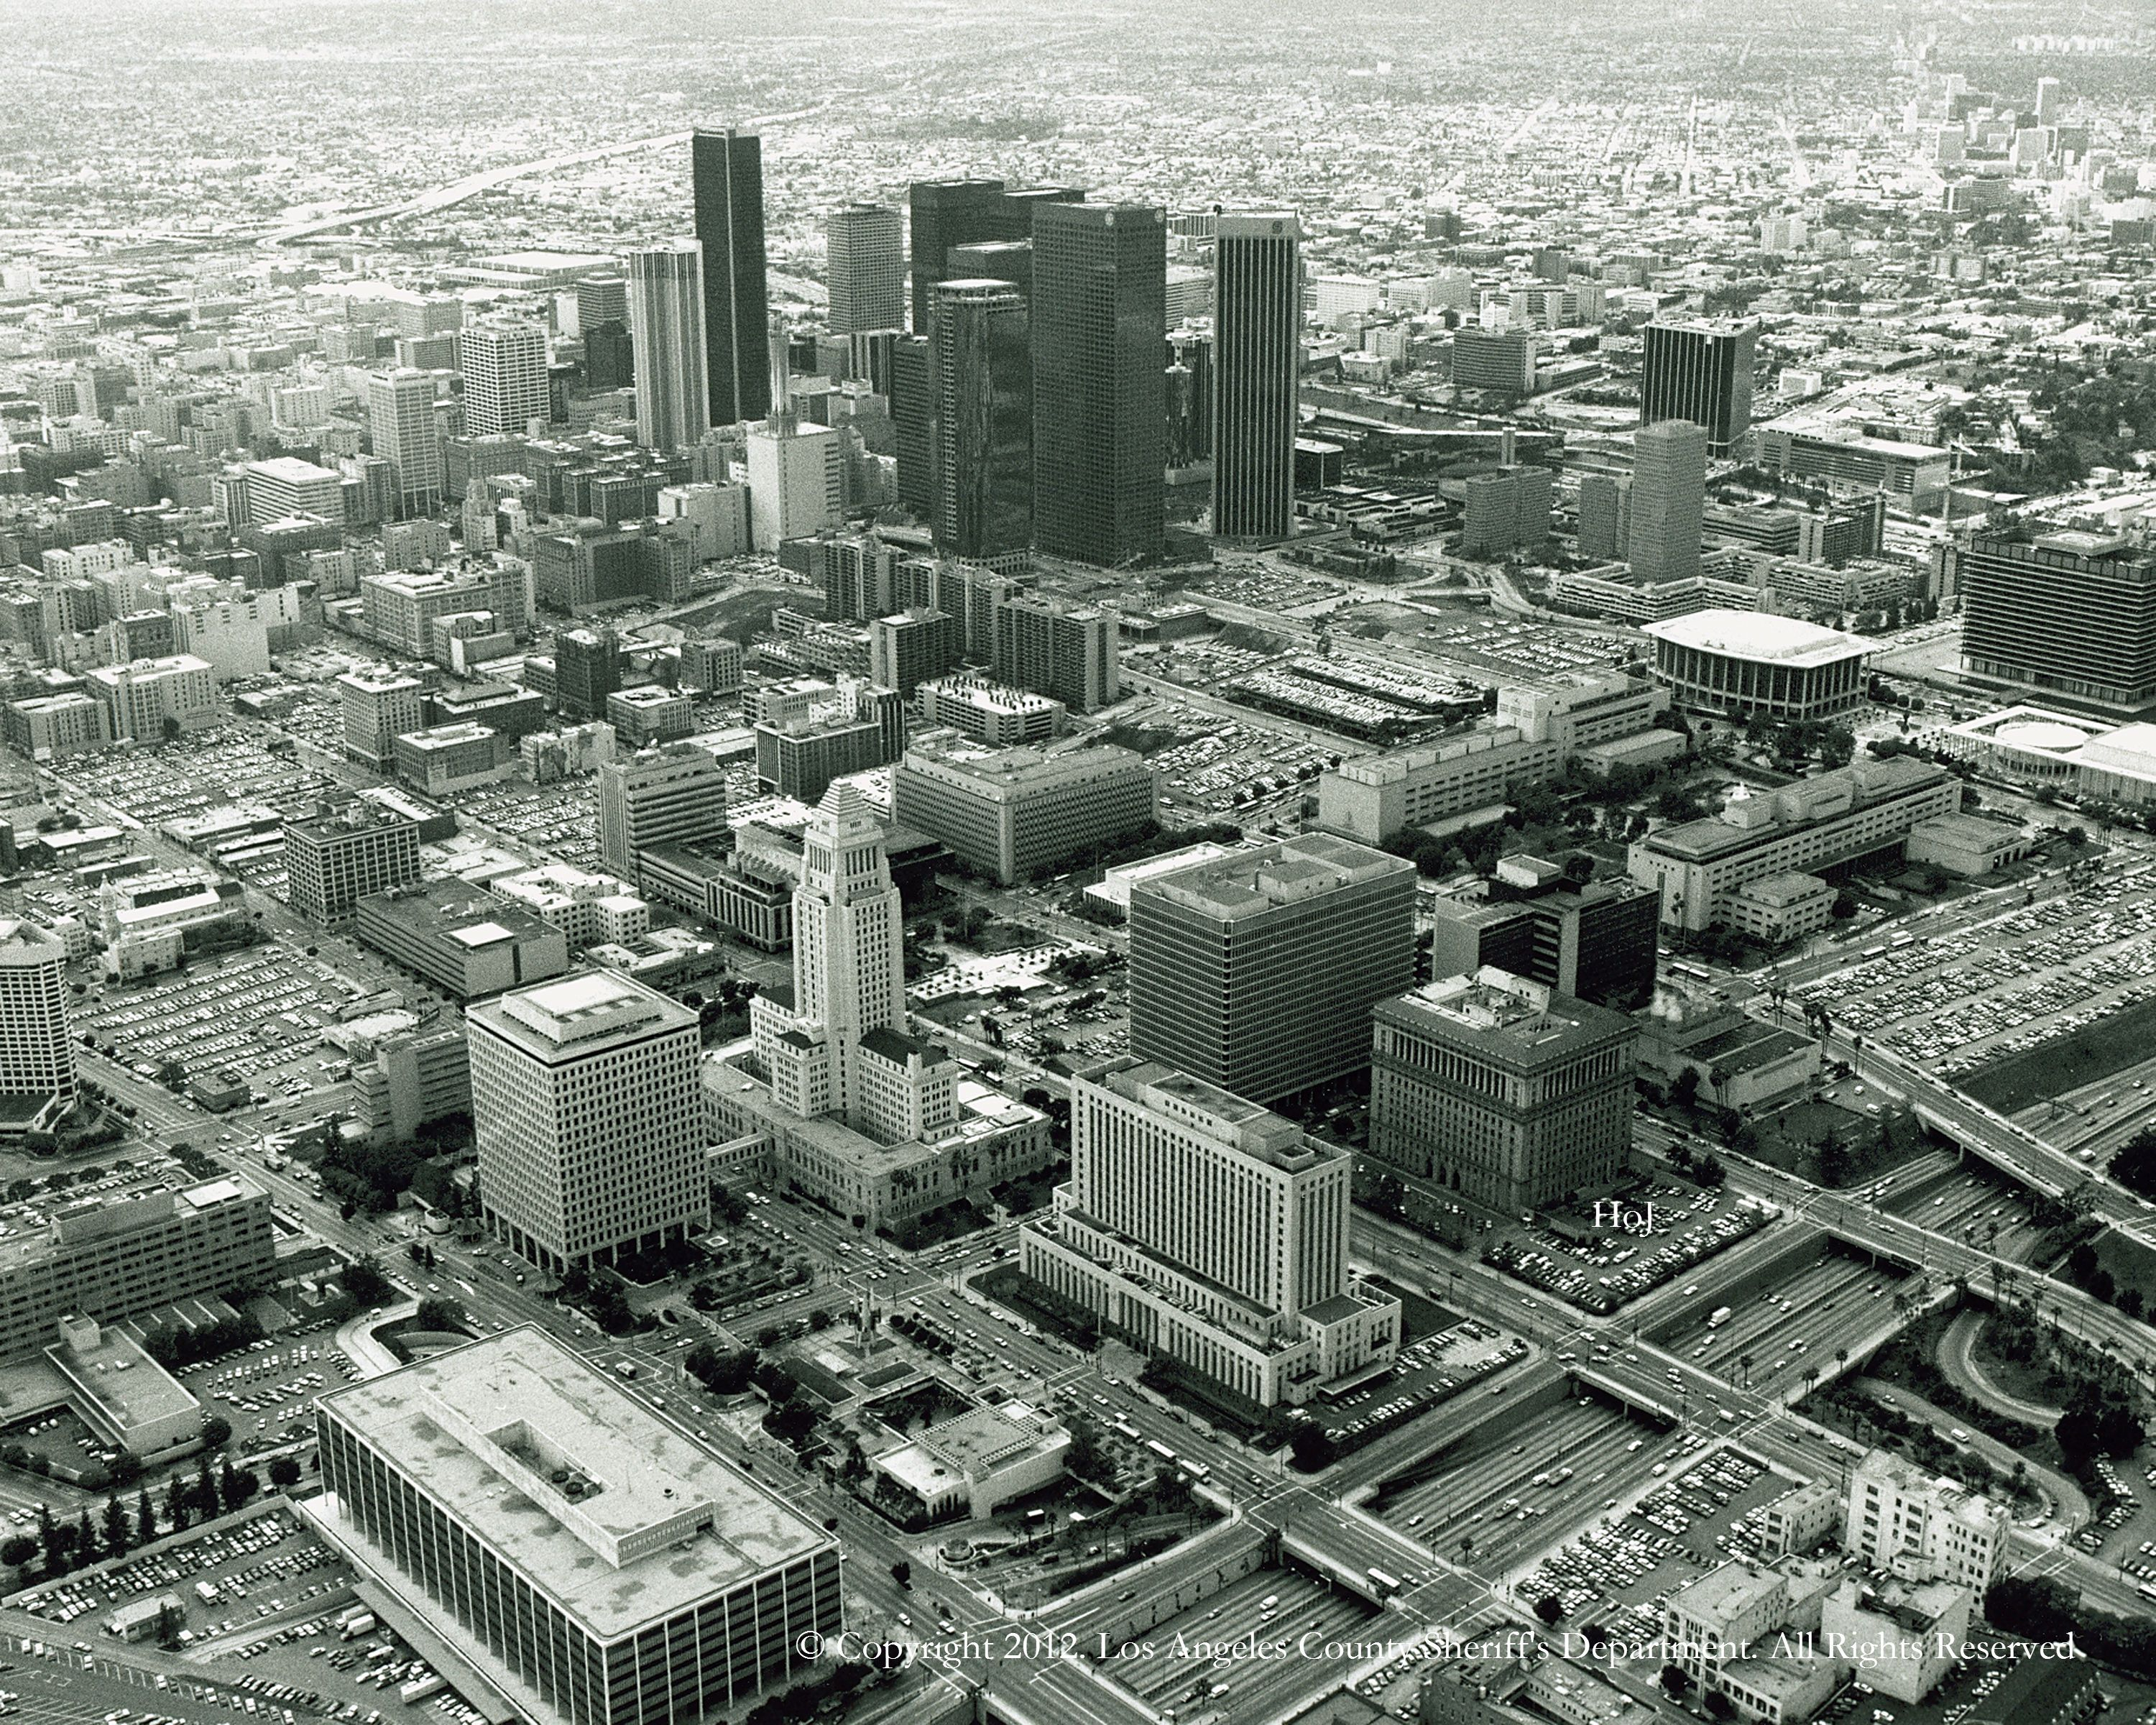 Downtown Los Angeles Unknown Year The Hall Of Justice Is Labeled Los Angeles Area Downtown Los Angeles Vintage Los Angeles